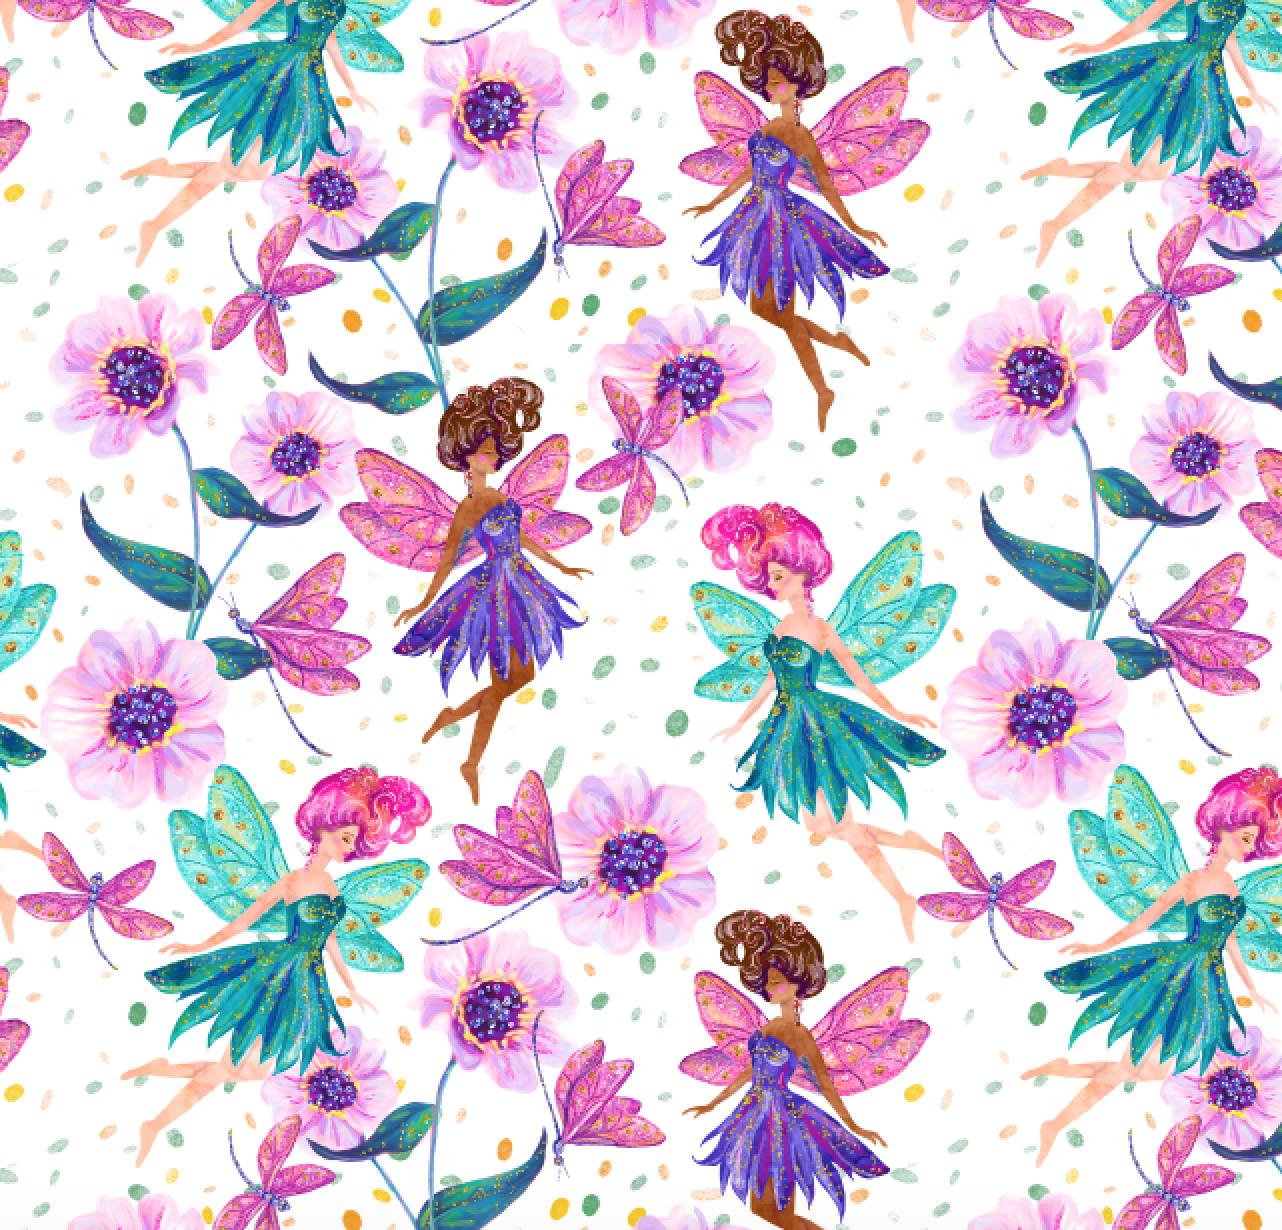 PRE ORDER Mystical Fairies - MM Fabric Print